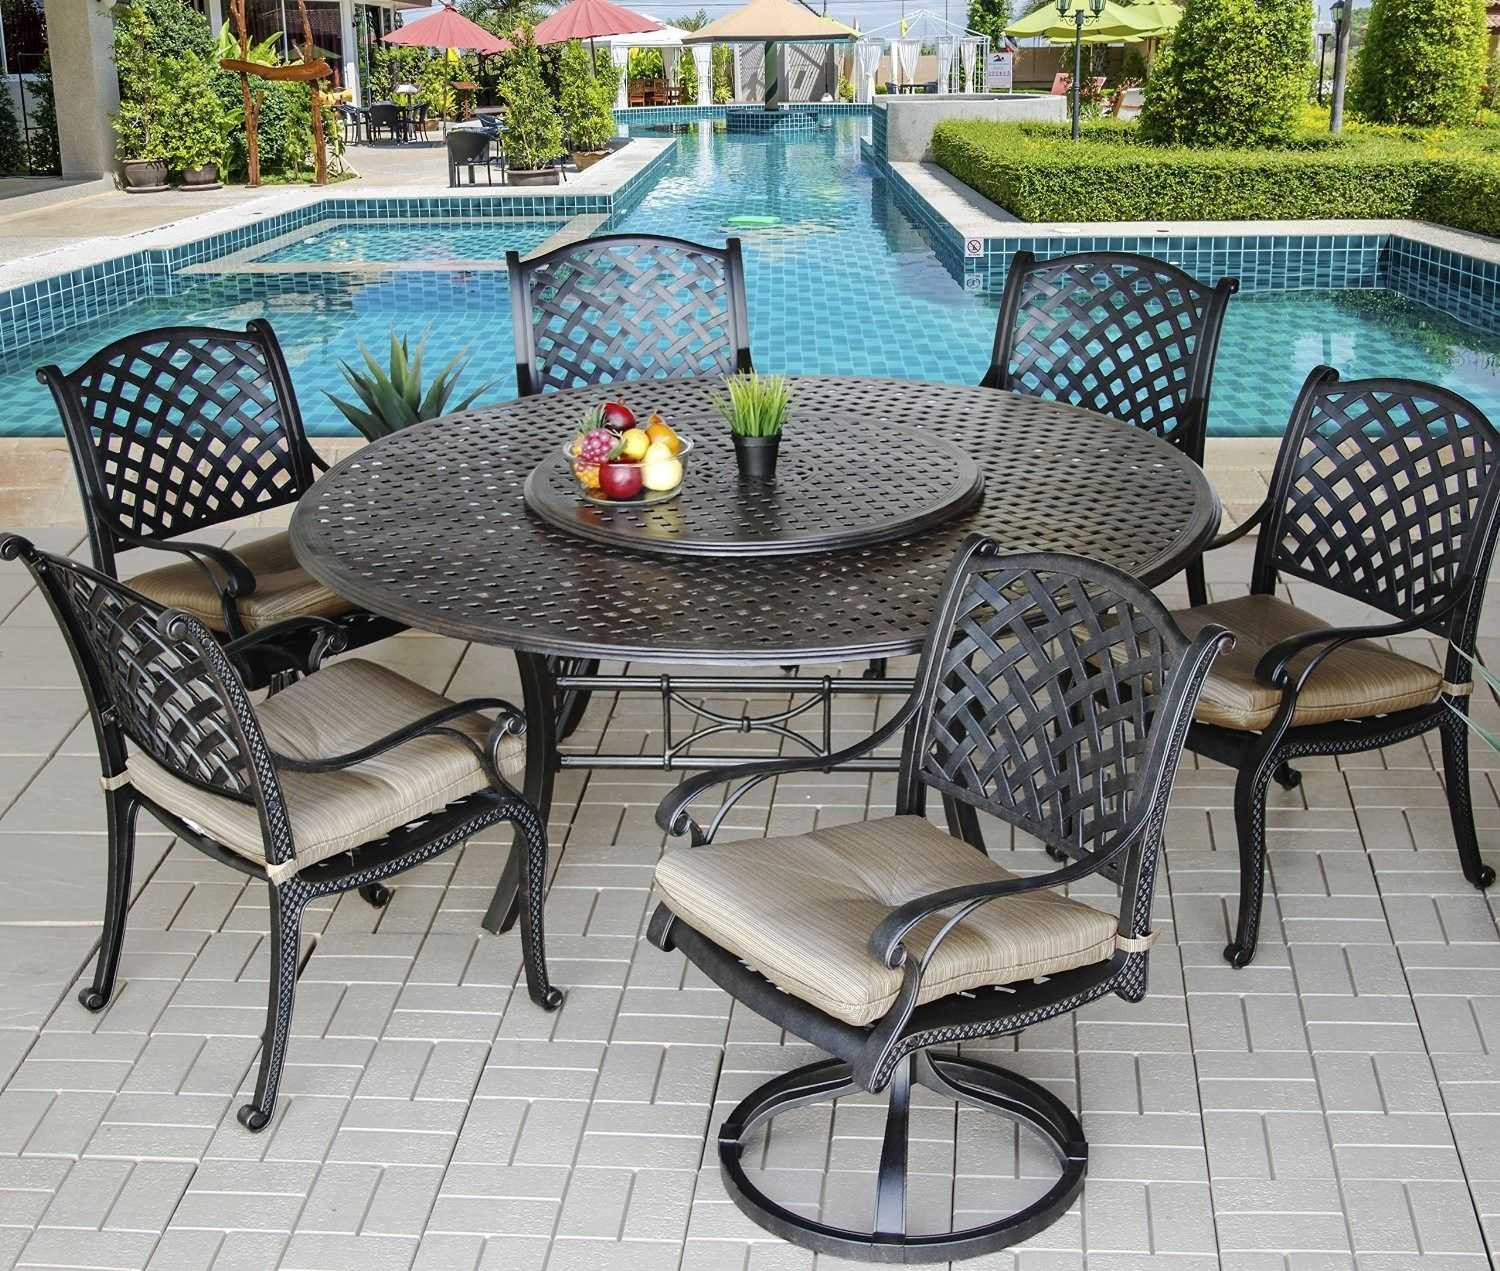 100 round patio table with lazy susan cool furniture ideas check rh pinterest com For Umbrella Patio Table with Lazy Susan large round patio table with lazy susan